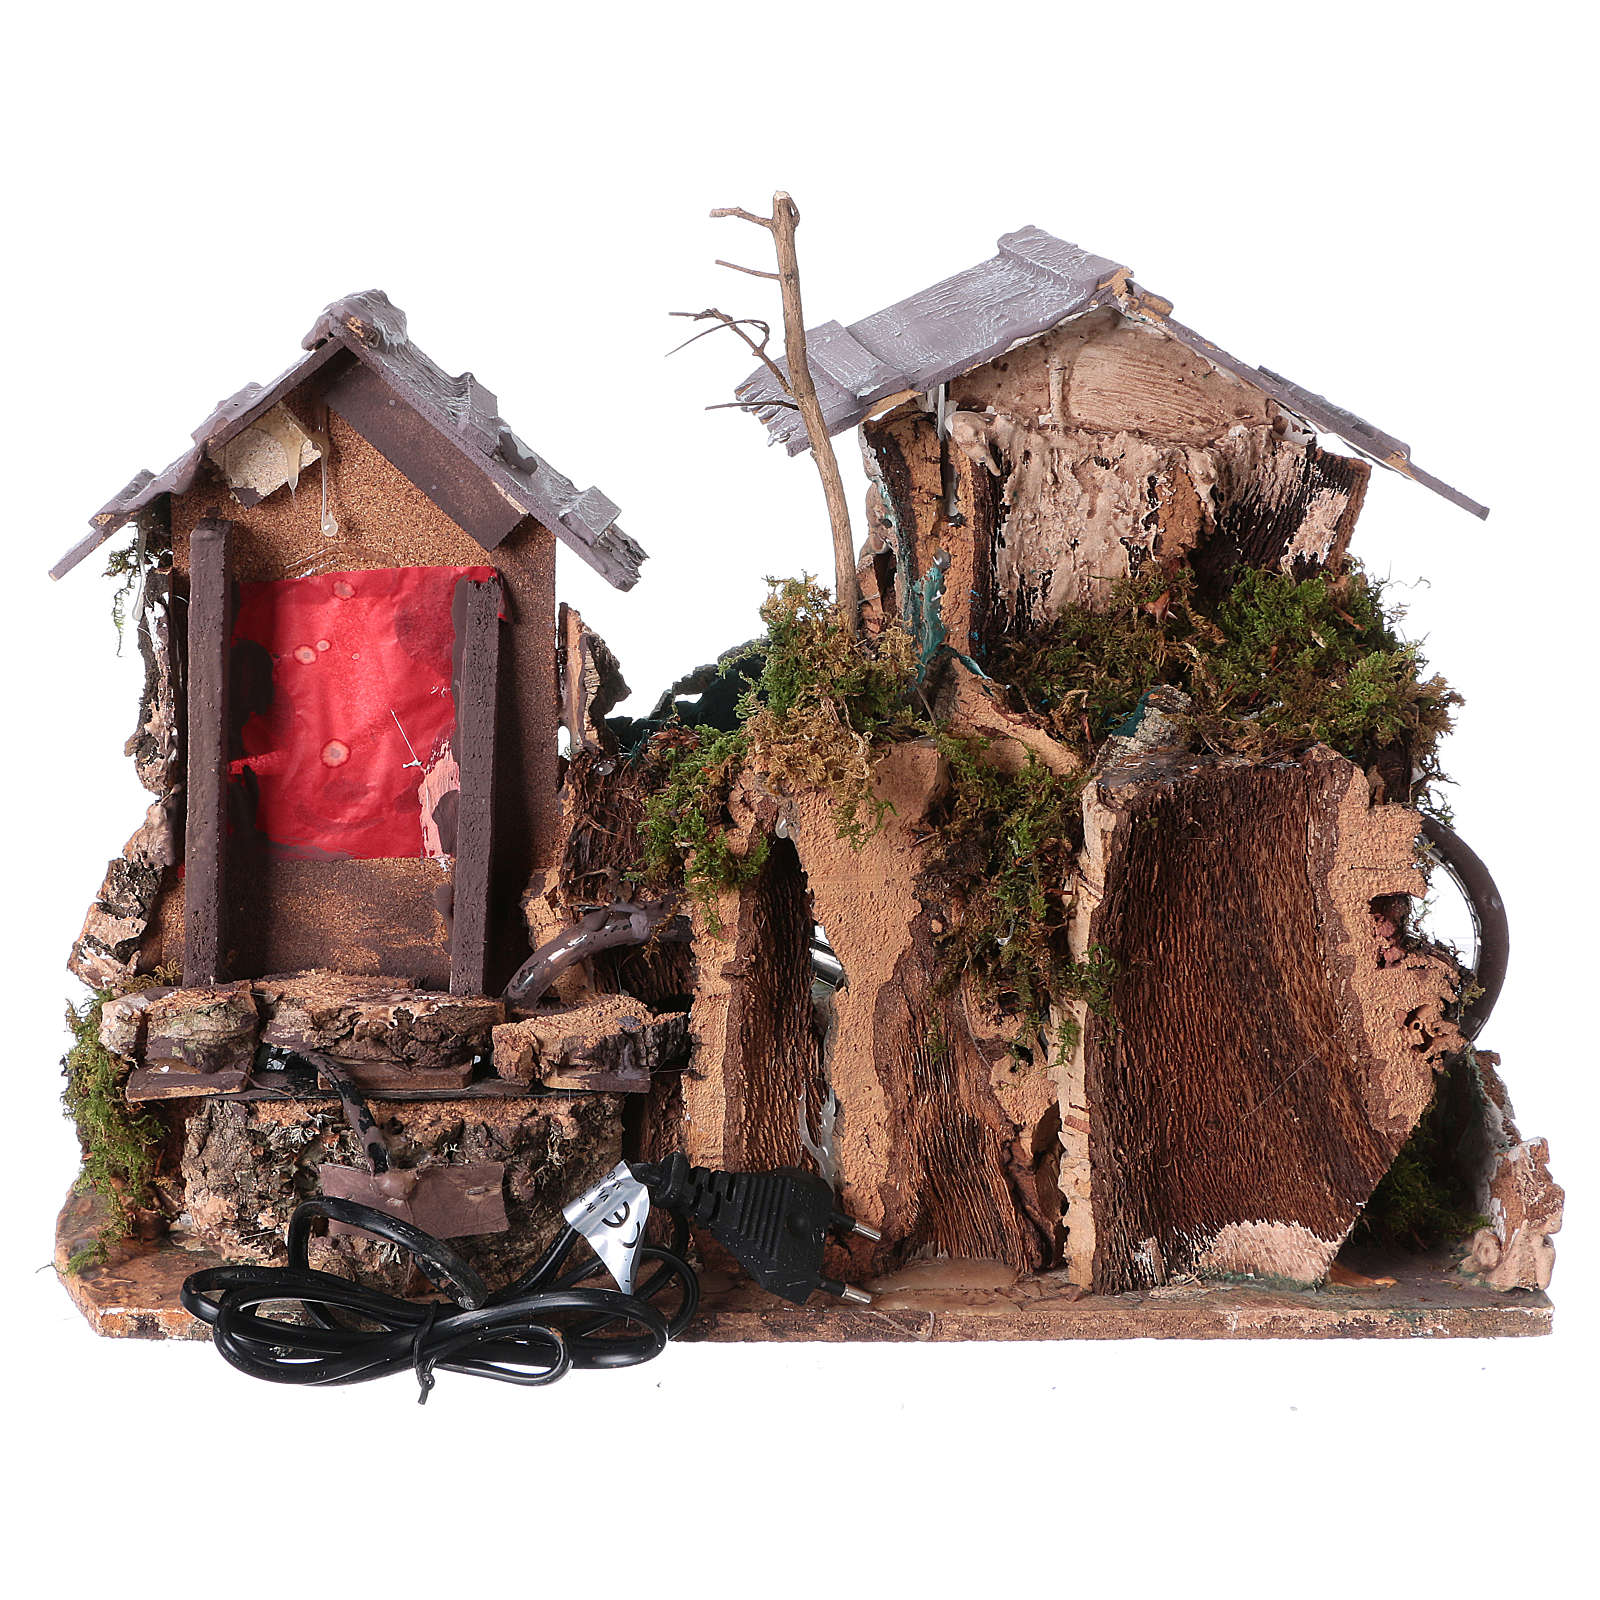 Nativity setting, waterfall between houses 4